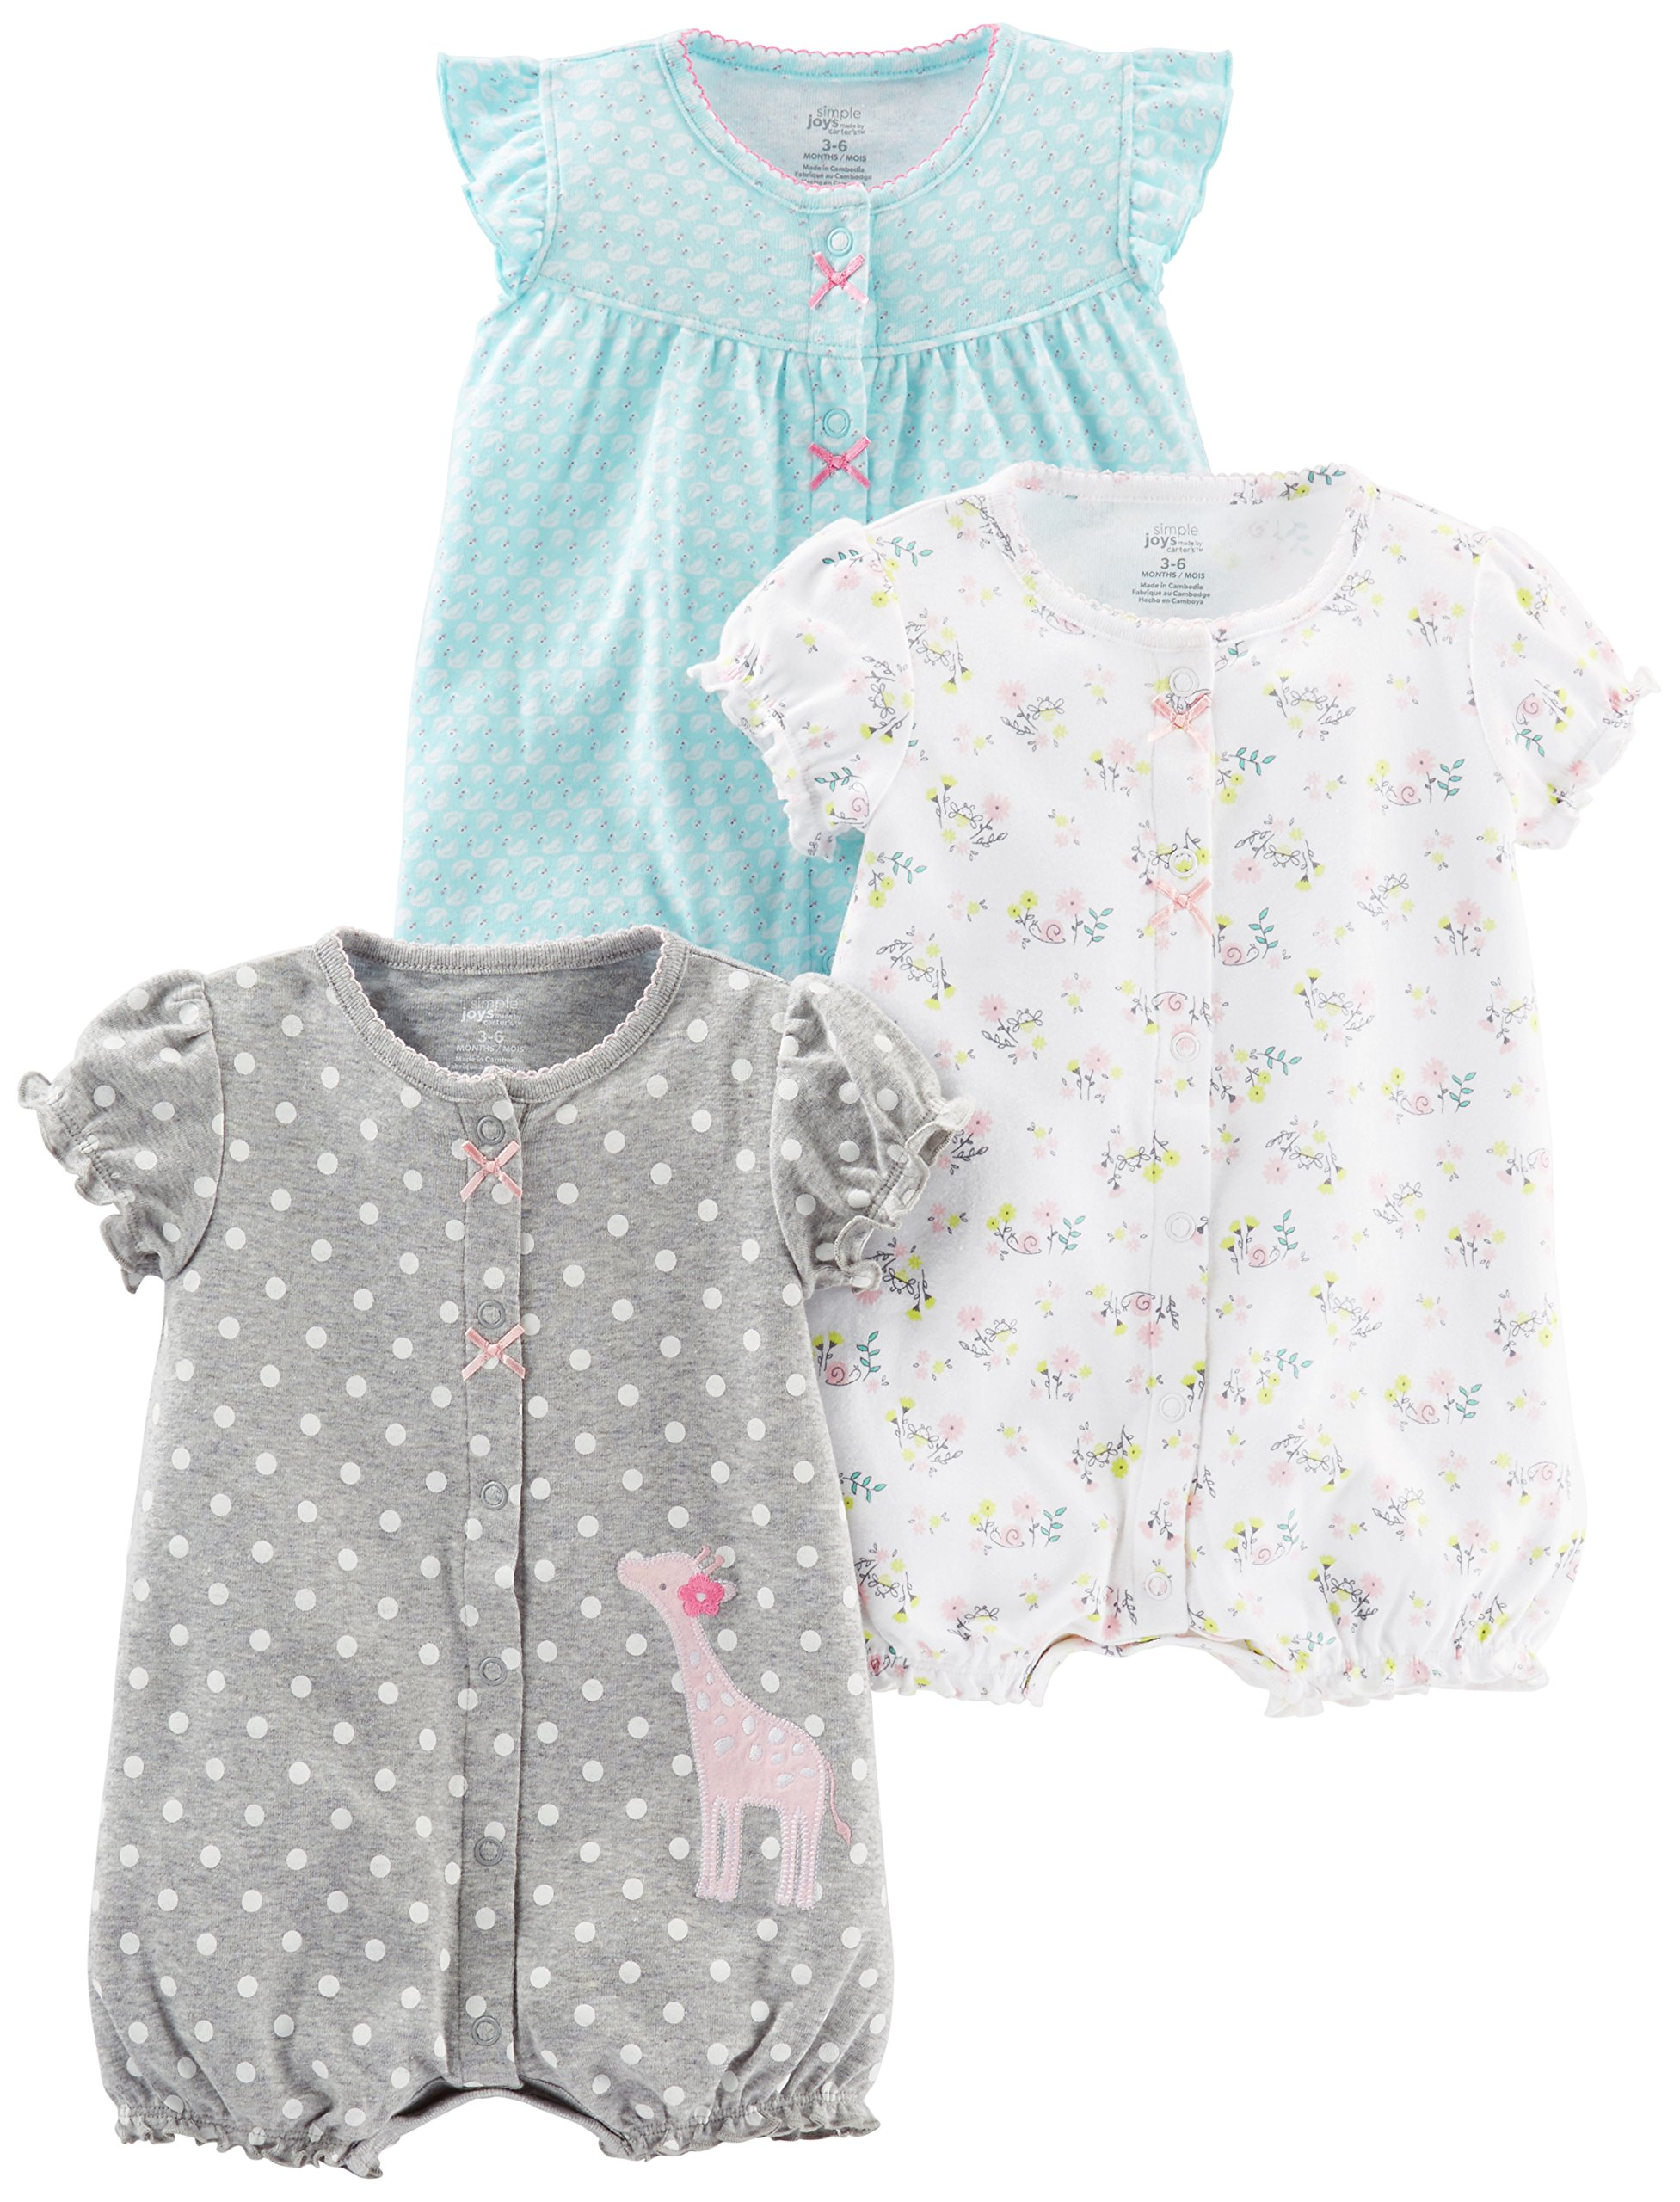 Simple Joys by Carter's Baby Girls' 3-Pack Snap-up Rompers, Blue Swan/White Floral/Gray Dot, 6-9 Months